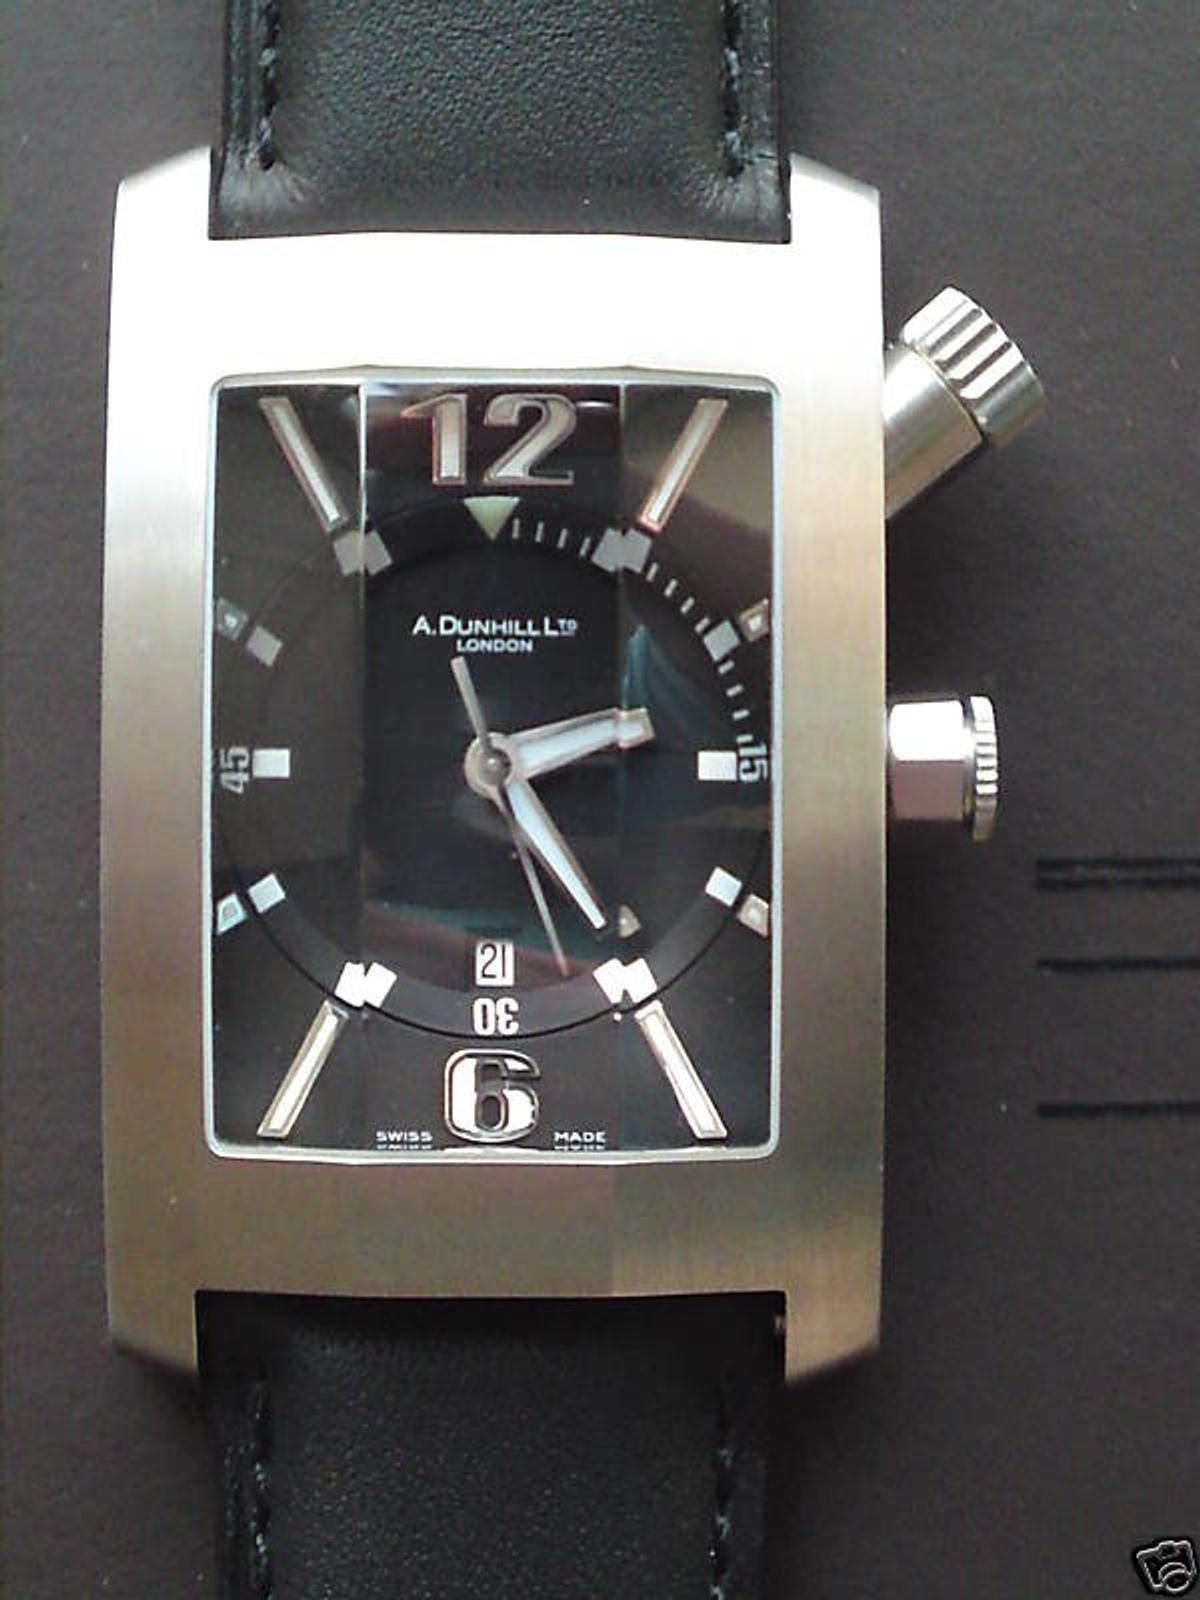 006ed8588 Alfred Dunhill Swiss Made Automatic Watch in GU52 Hart for £325.00 ...